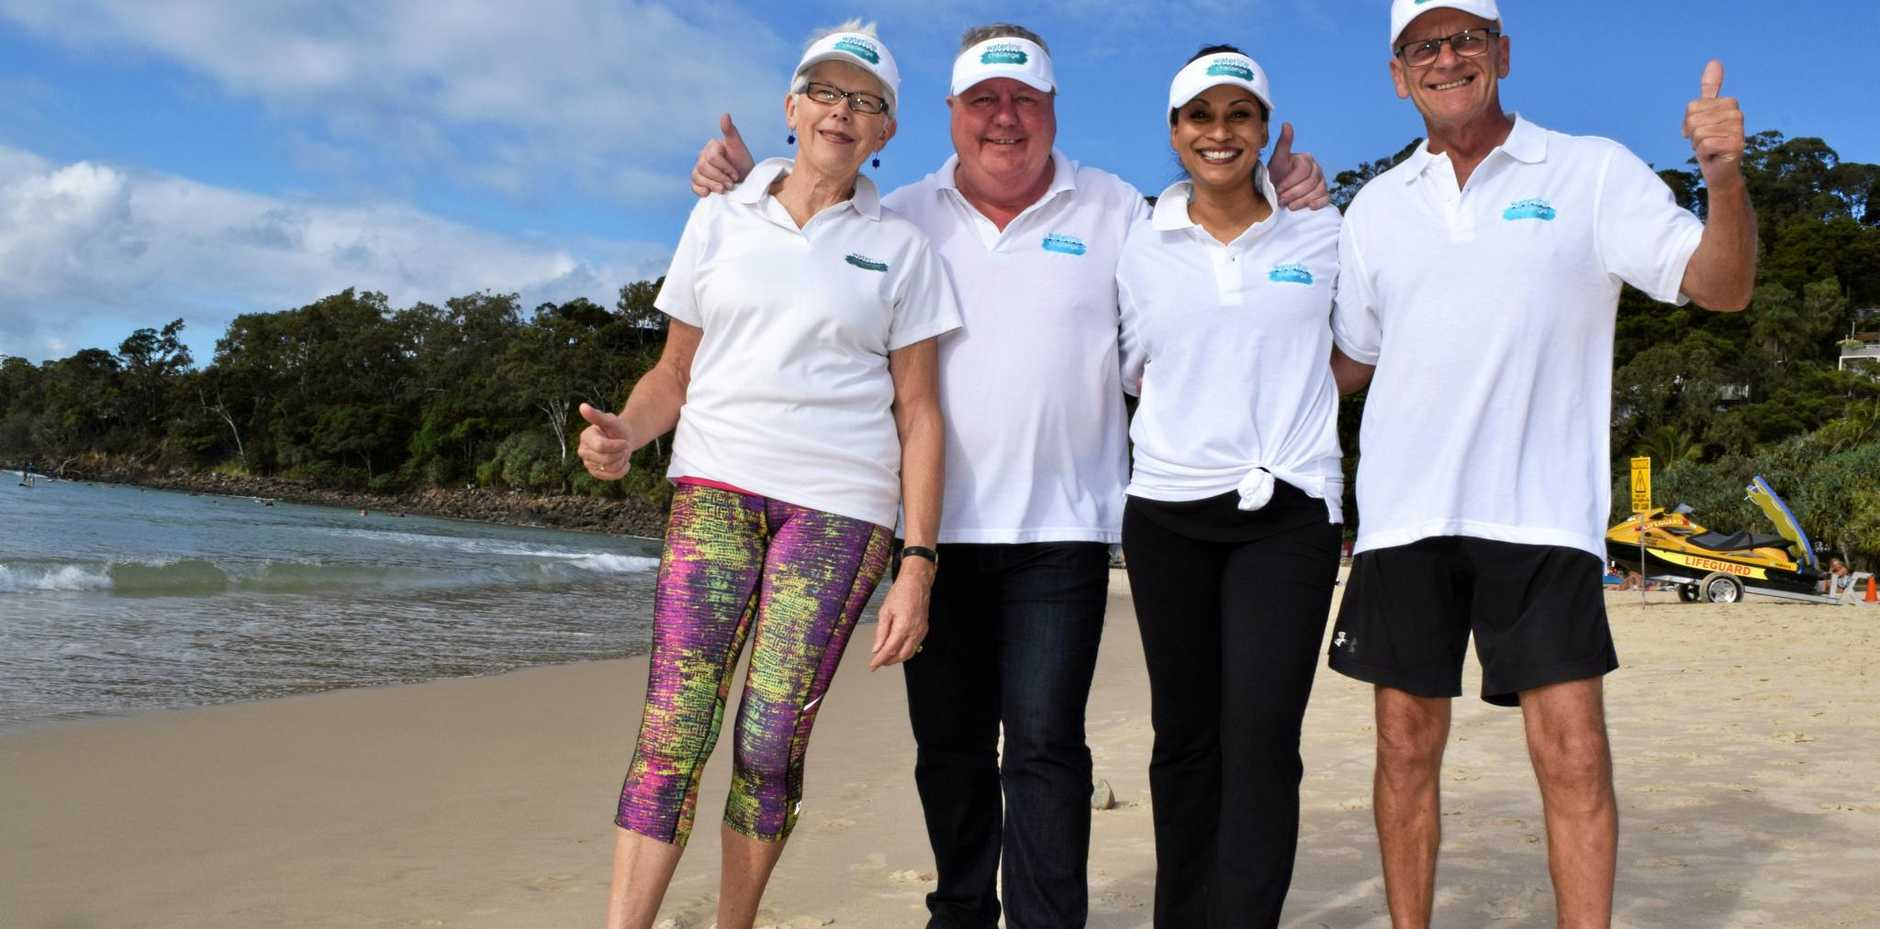 STEP UP: Walkers Dr Bronwyn Cooper, Julian Day, Preetie Shehkkar and supporter Gary Parsons.